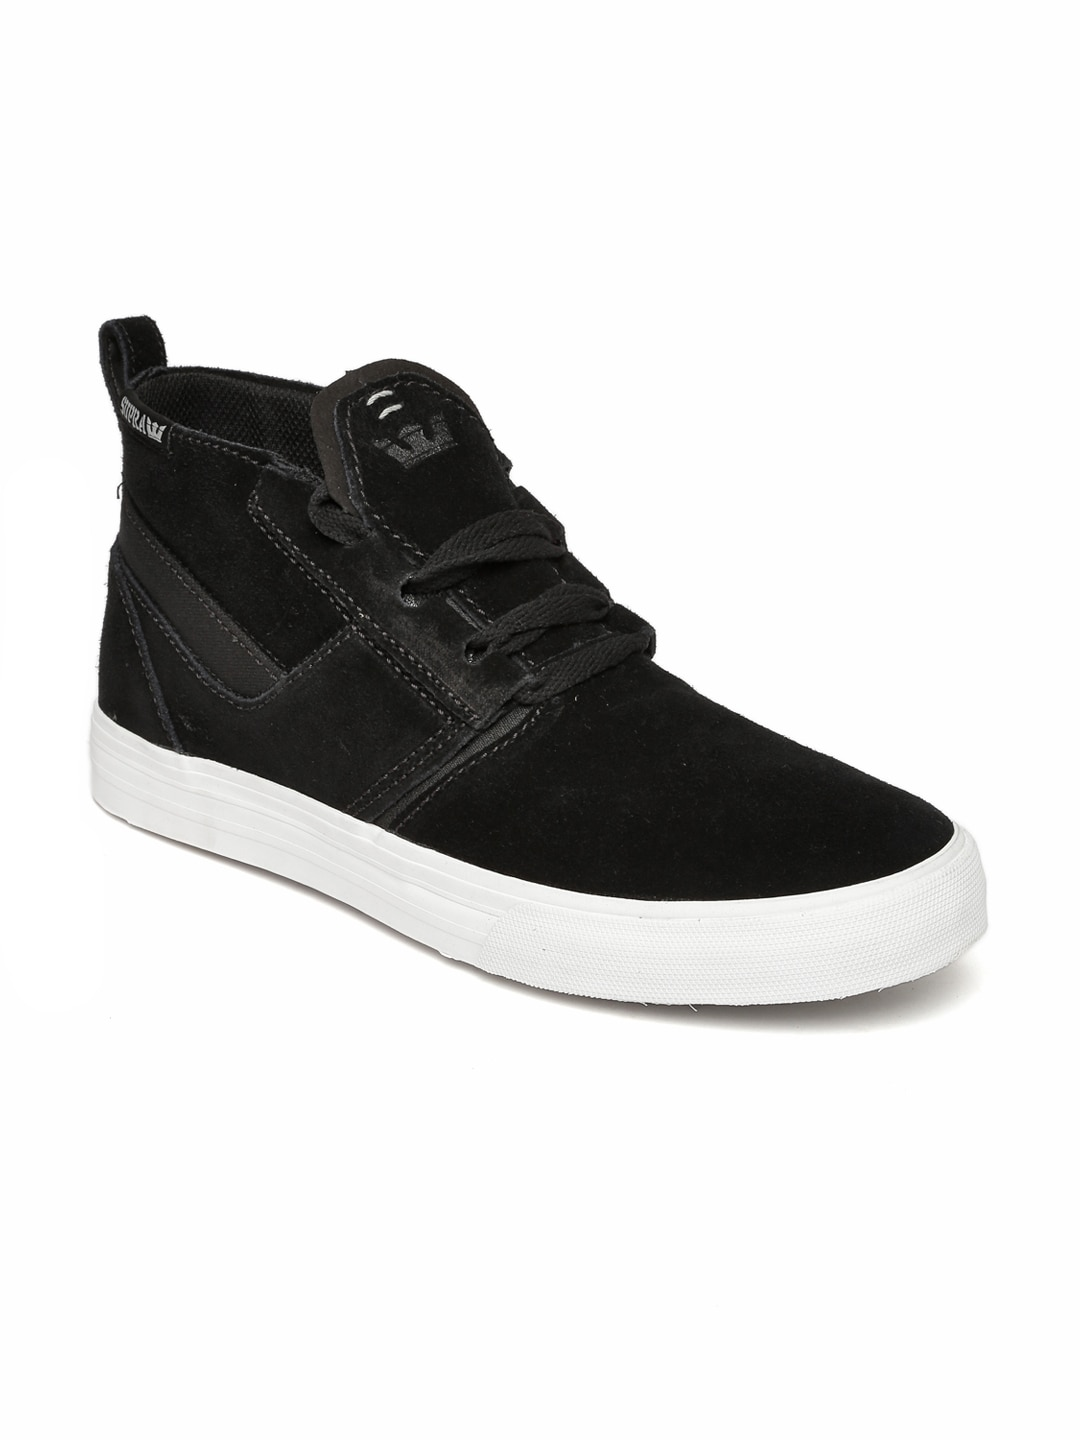 5d28c5f0dac7 Supra Shoes - Buy Supra Shoes   Sneakers Online in India